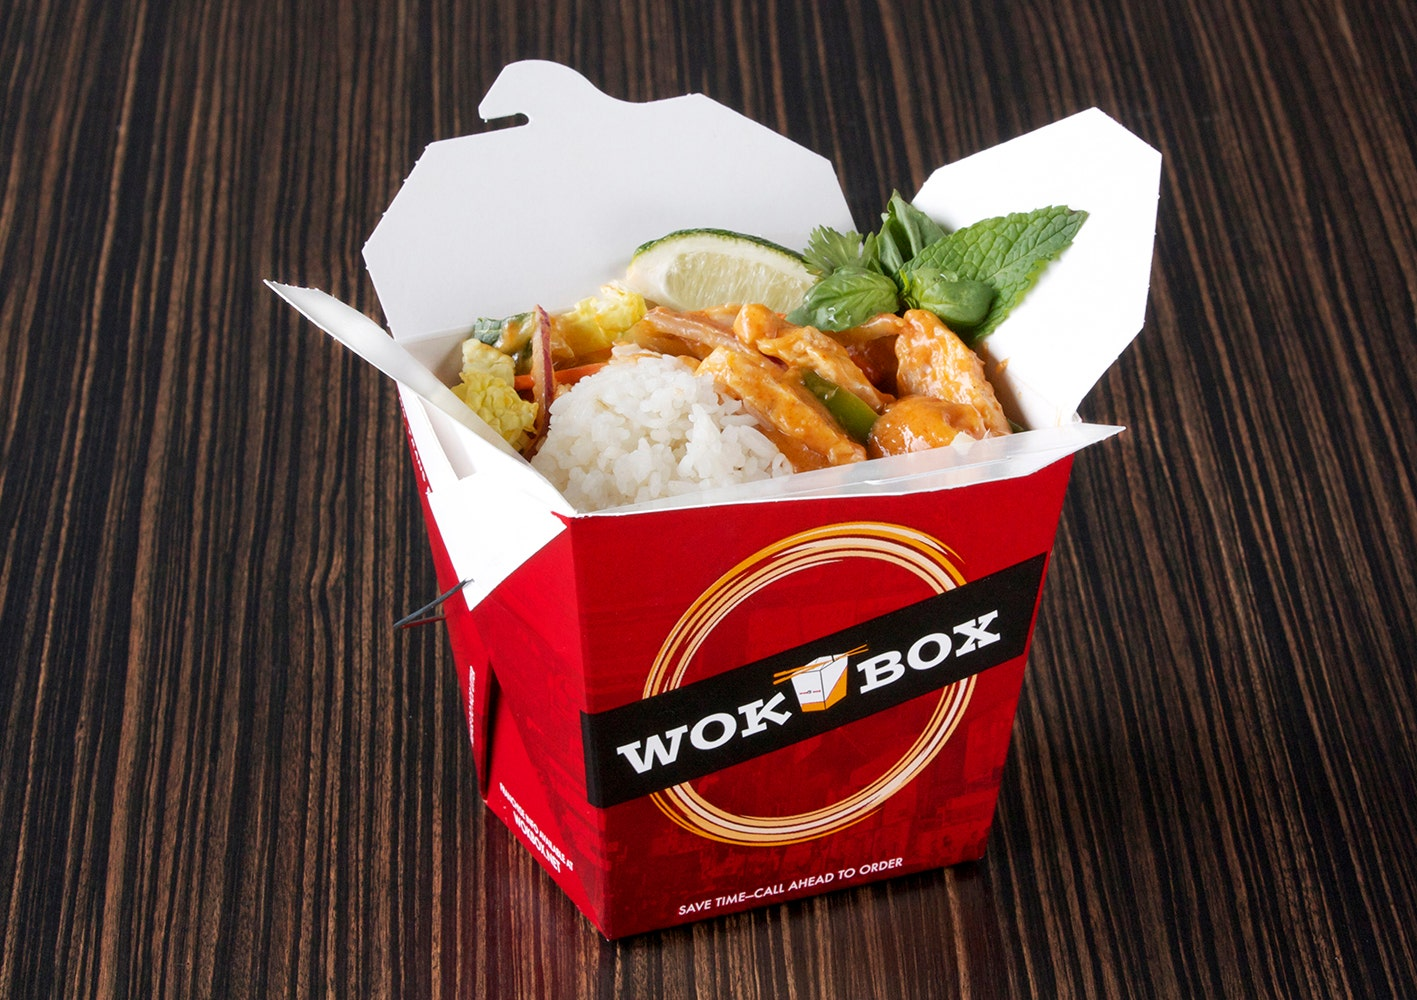 locations noodle box Franchise Asian Business Fox Noodle  U.S. Canada Grows  to from Small